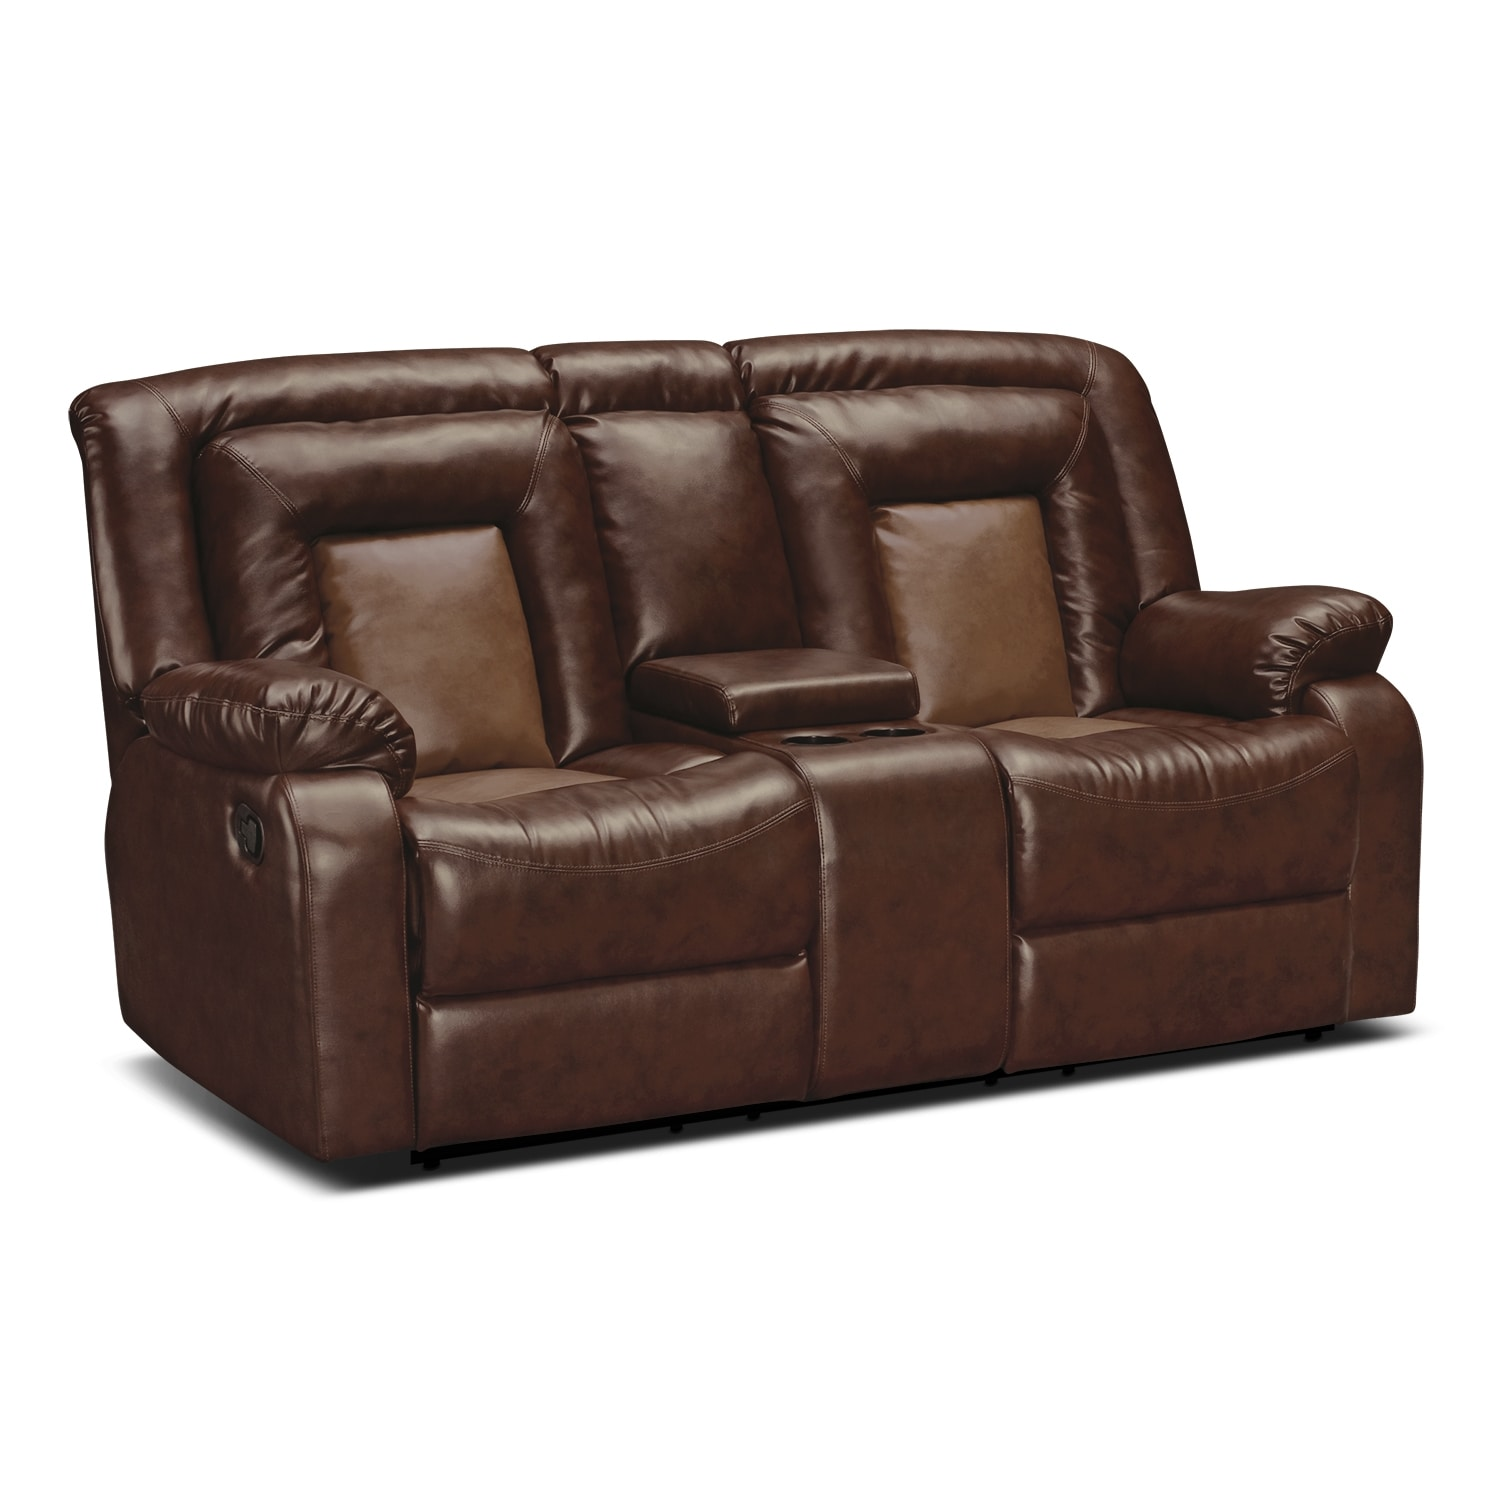 Cobra Dual Reclining Loveseat